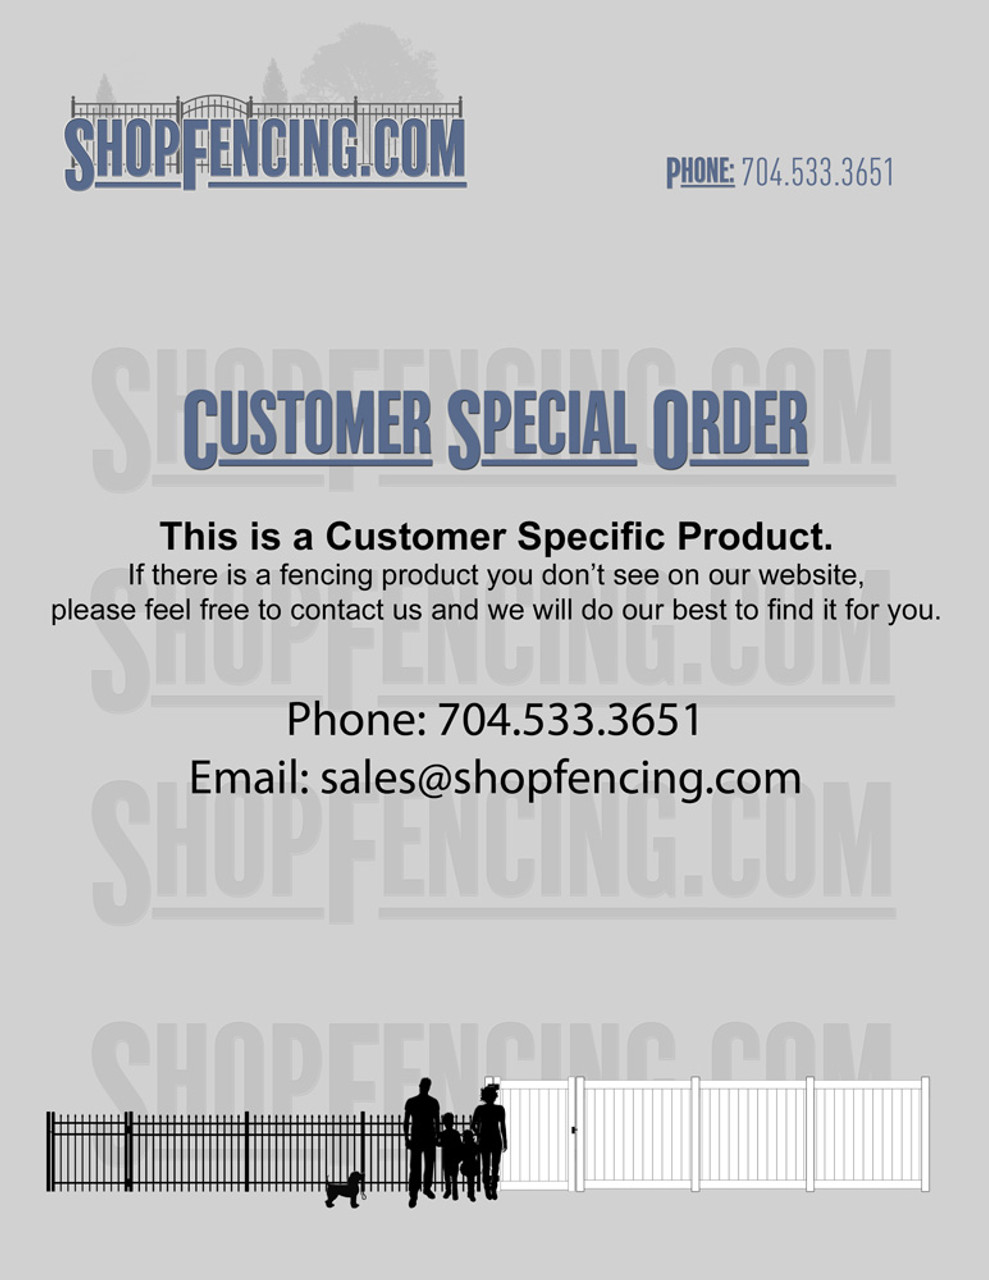 ShopFencing.com Customer Special Order